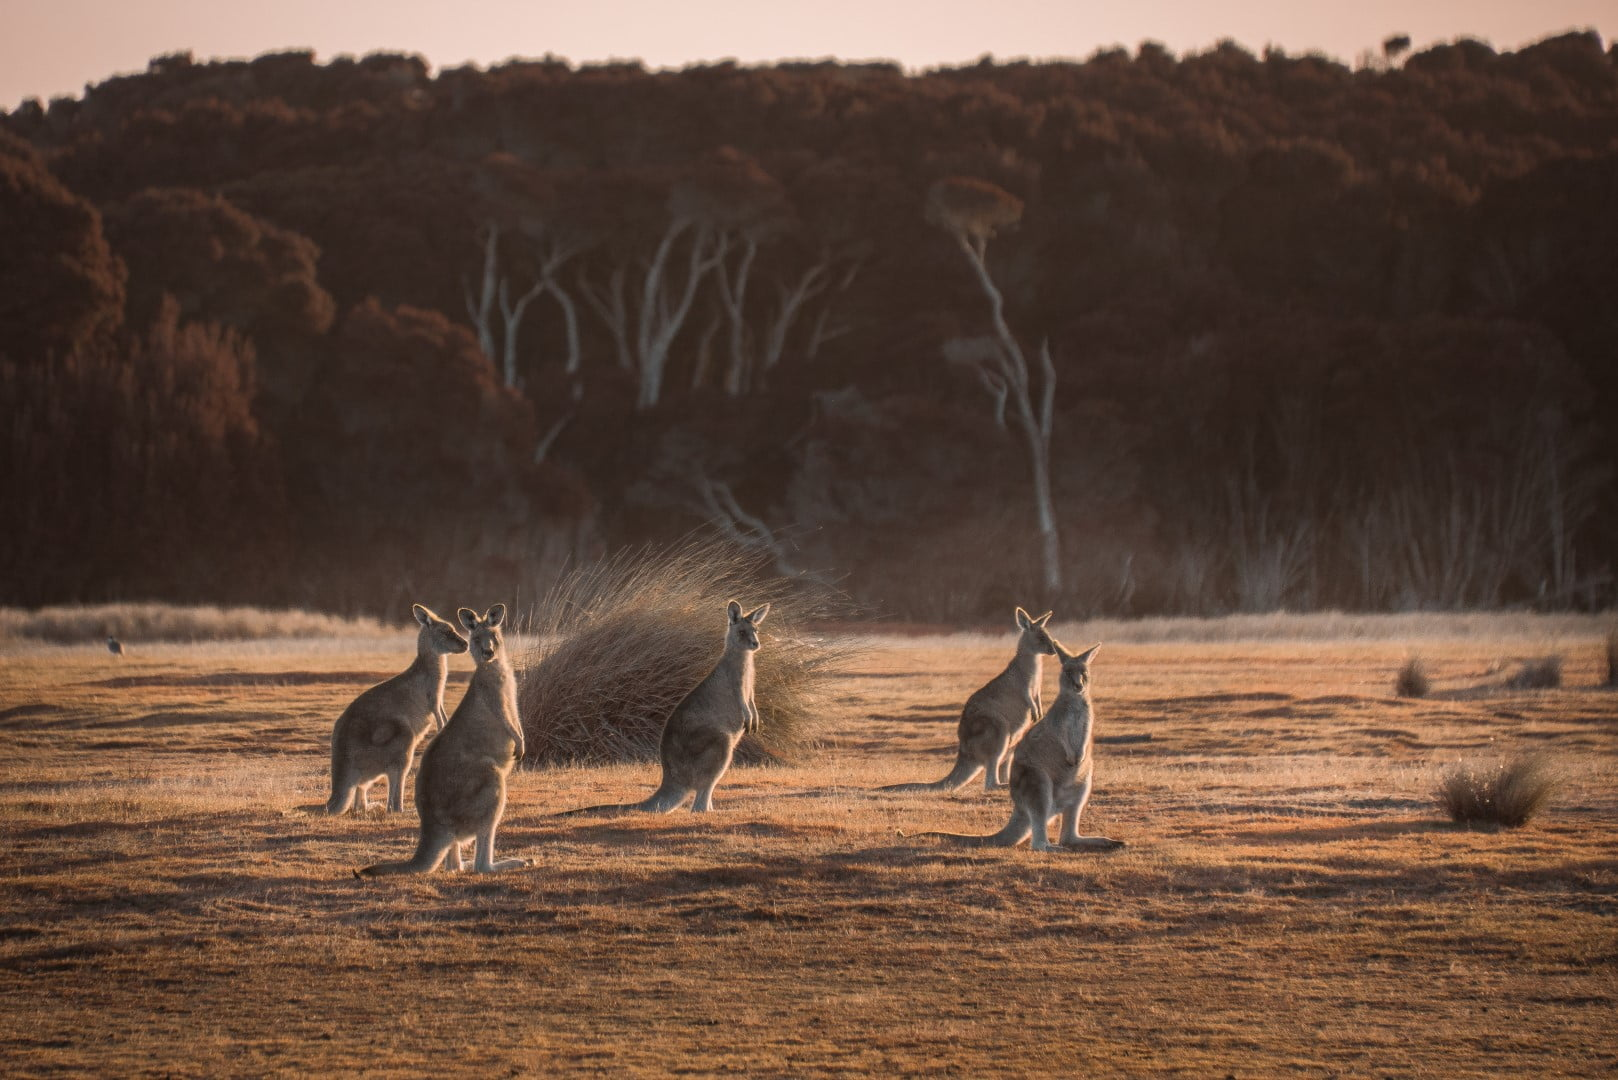 Kangaroos on Springlawn, Narawntapu National Park